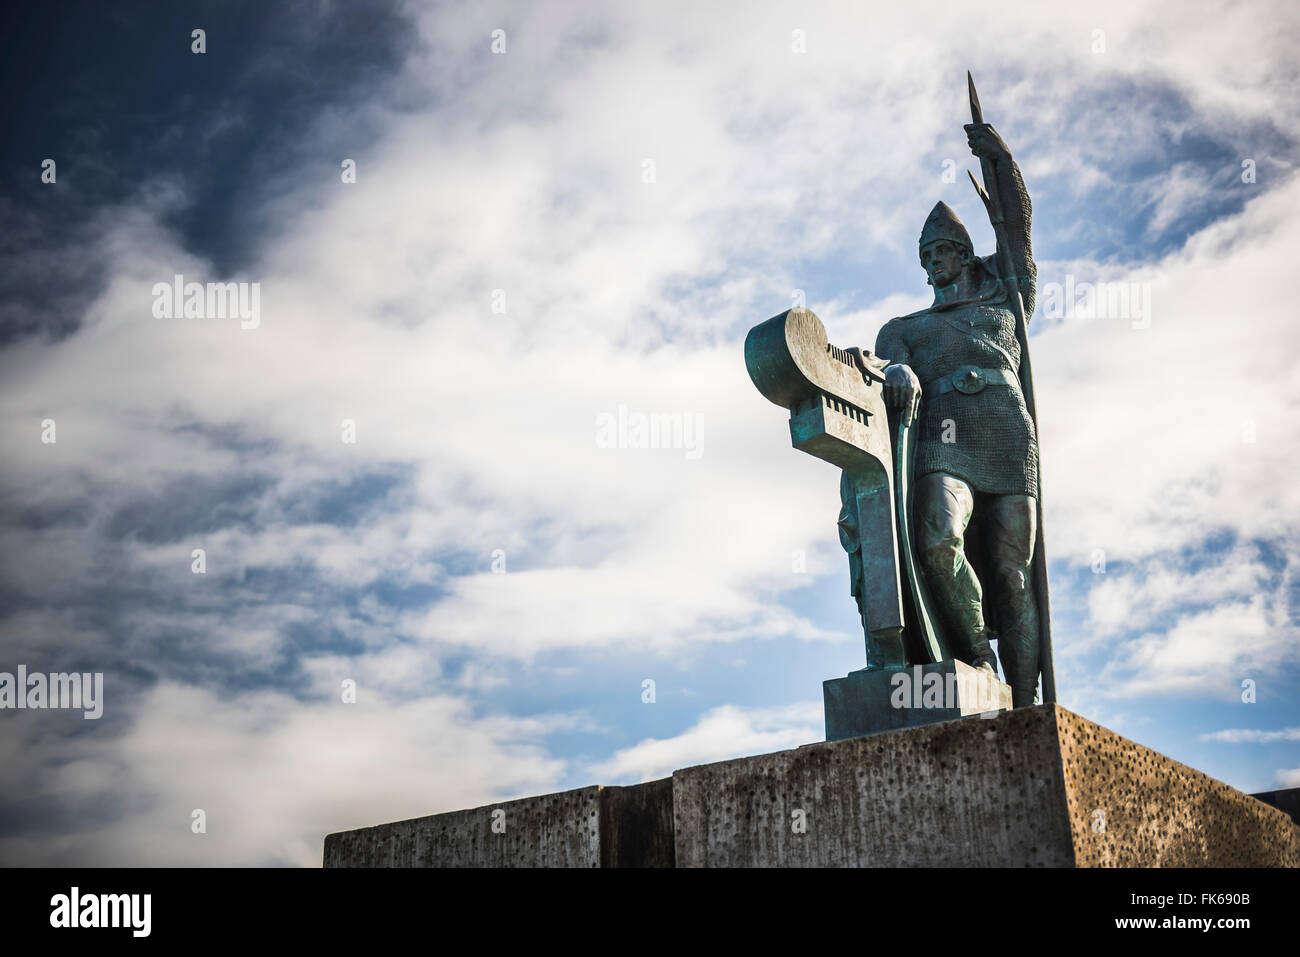 Statue of Ingolfur Arnarson, considered the first settler of Iceland, on Arnarholl Hill in Reykjavik, Iceland, Polar - Stock Image